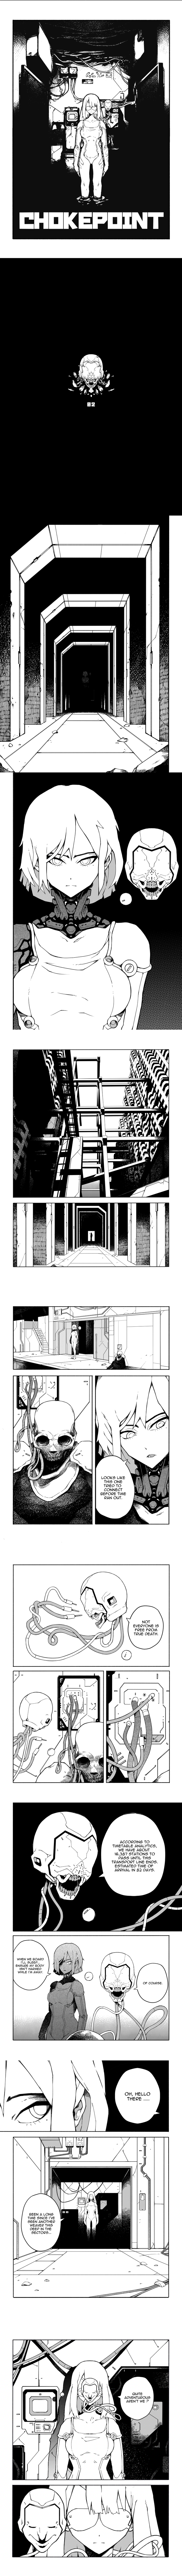 CHOKEPOINT CHAPTER 02 Part1